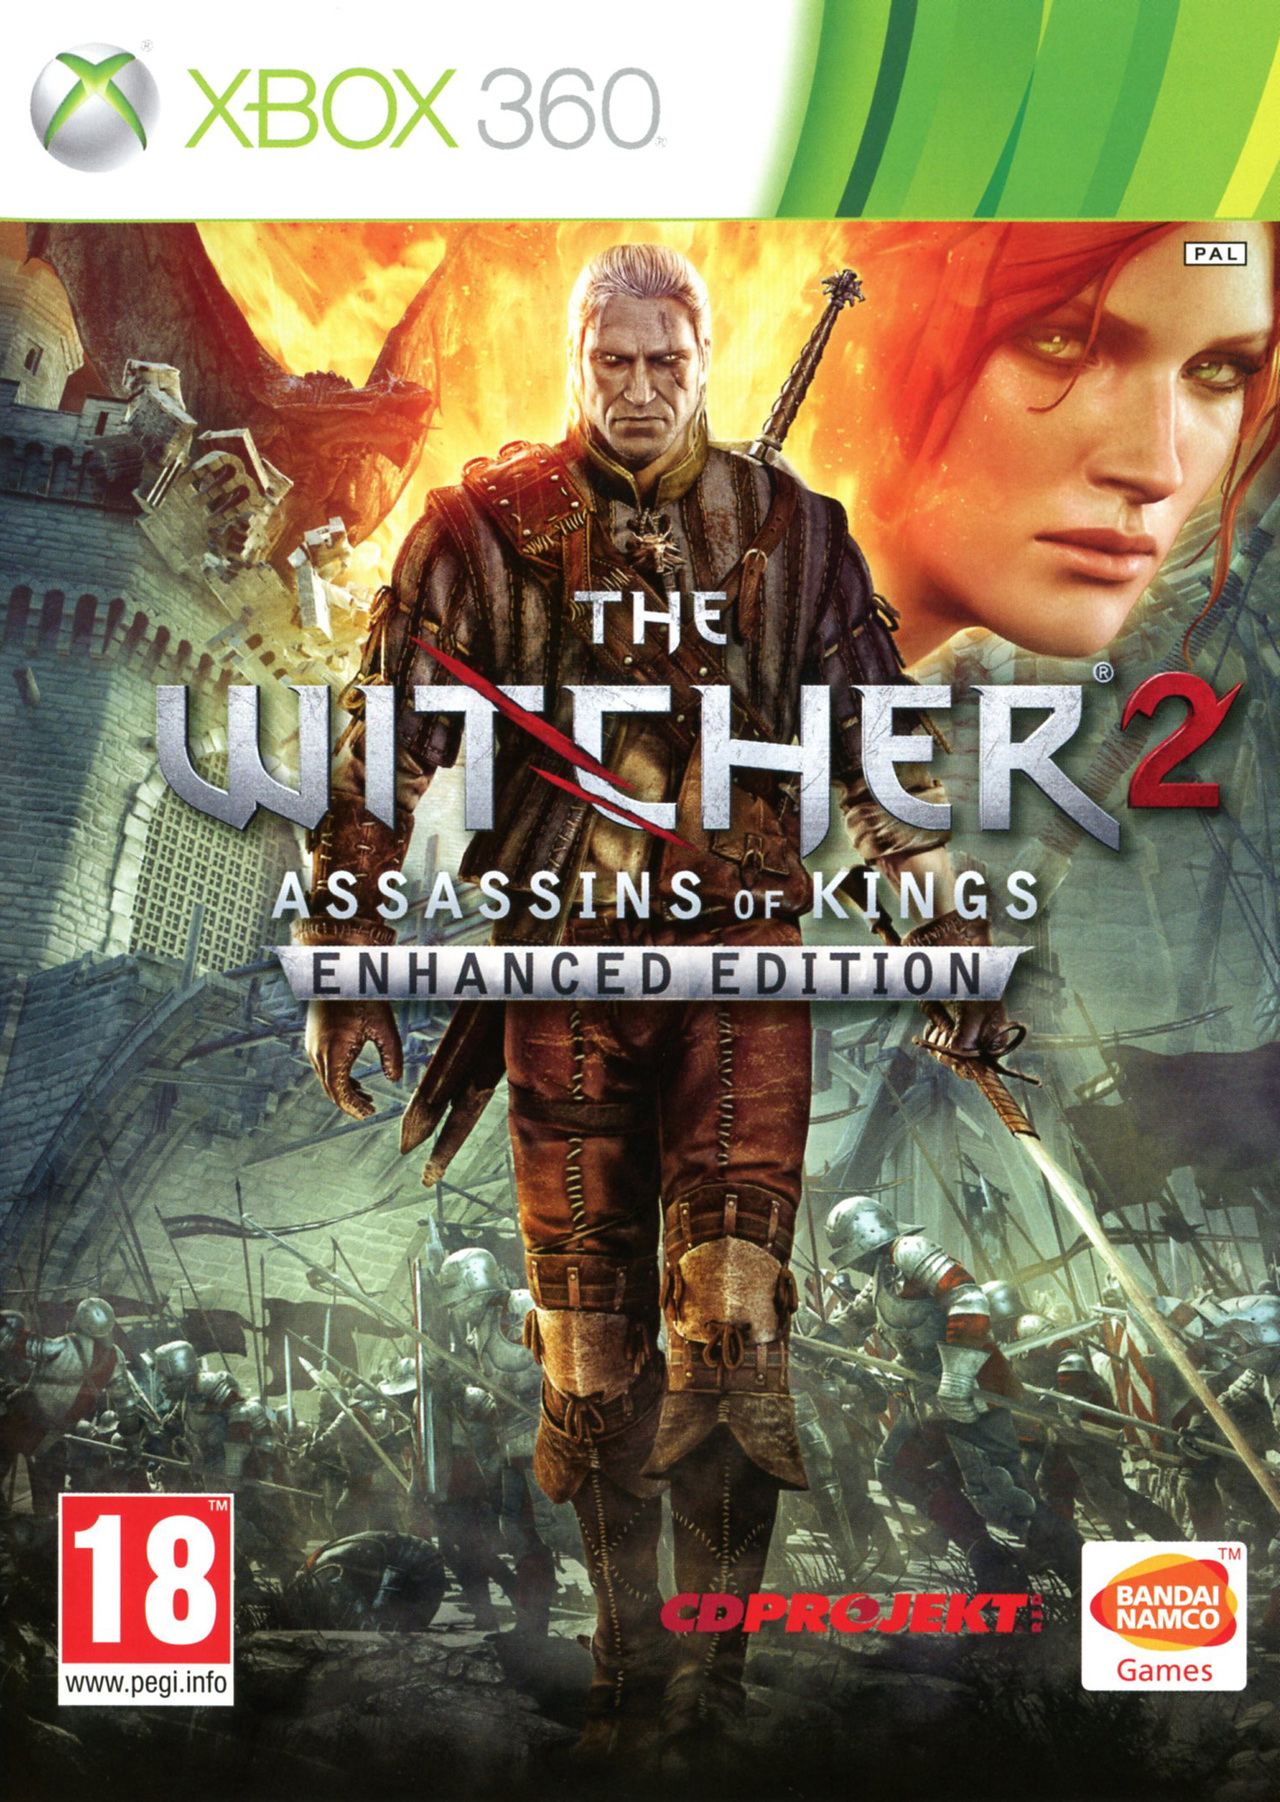 jaquette du jeu vidéo The Witcher 2 - Assassins of Kings